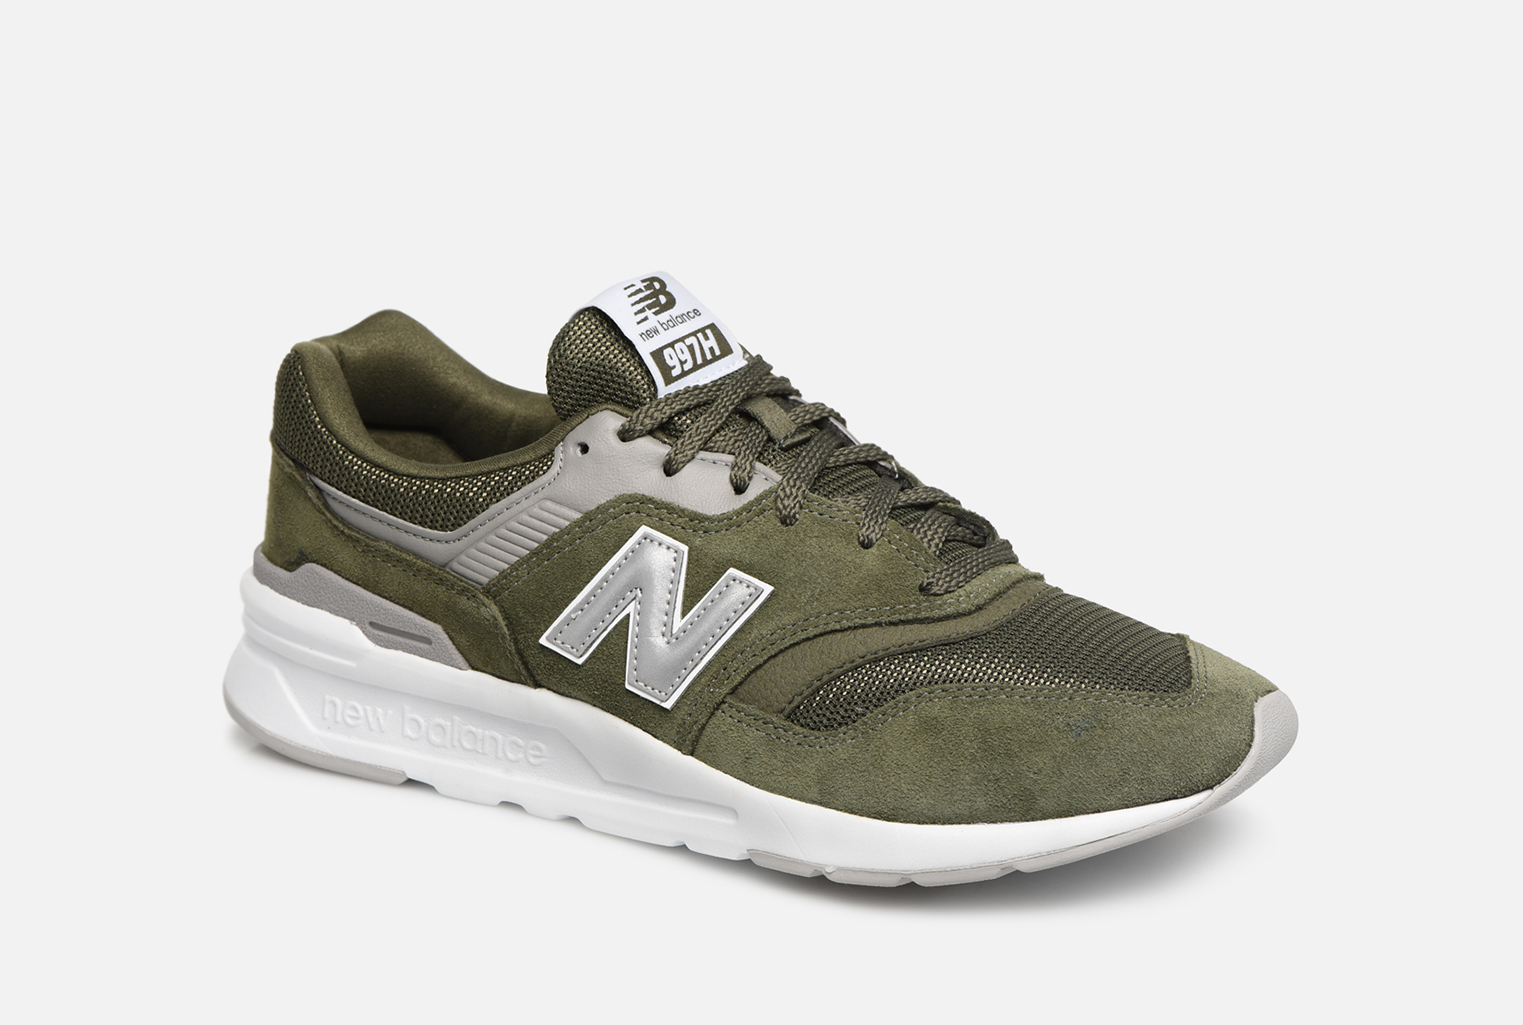 san francisco b6110 777d4 New Balance   Boutique de chaussures New Balance